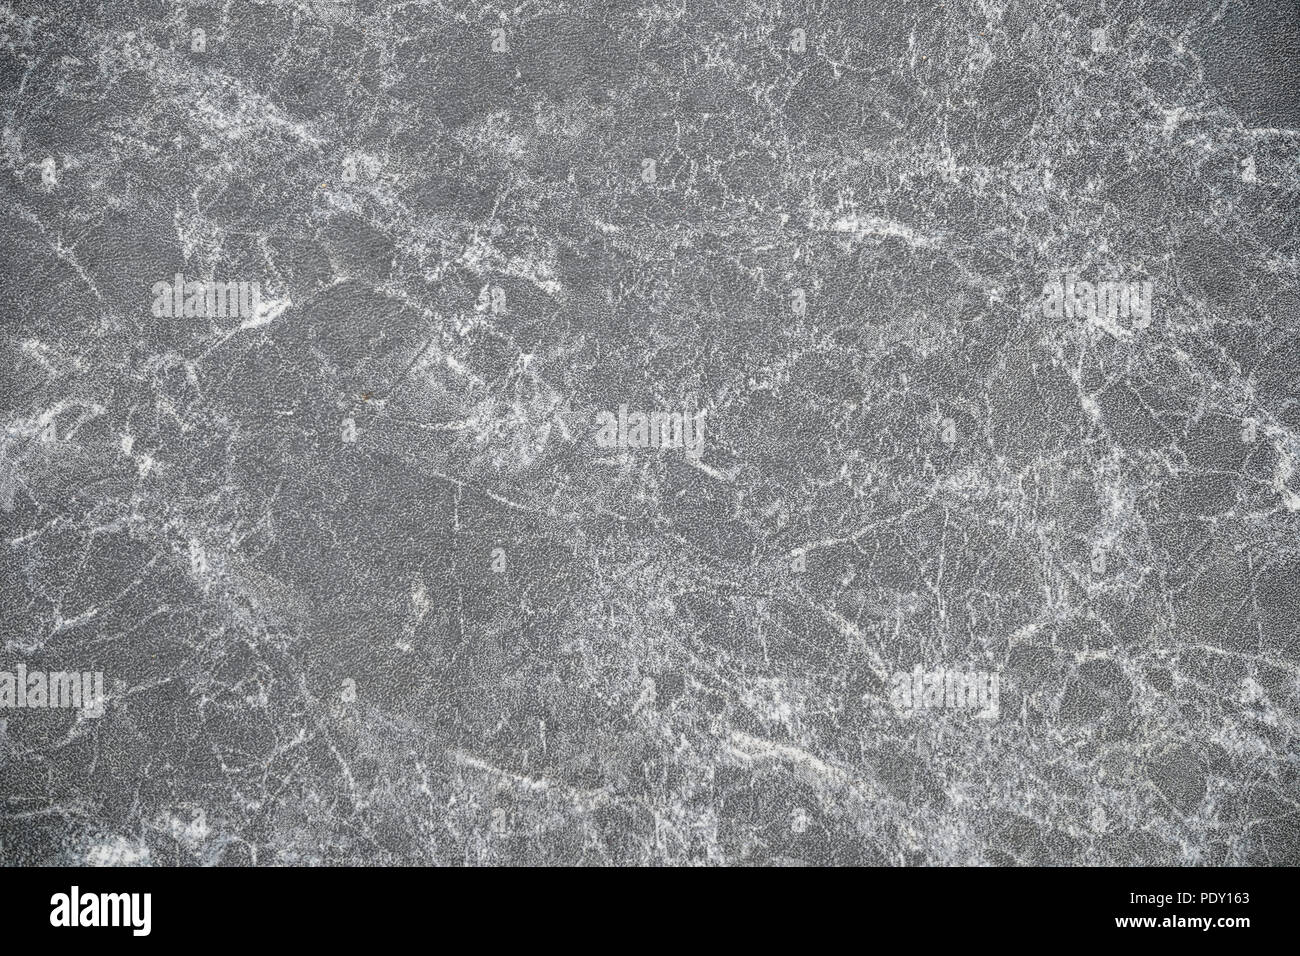 Marble is a metamorphic rock composed of recrystallized carbonate minerals, most commonly calcite or dolomite. Marble may be foliated. In geology the  - Stock Image